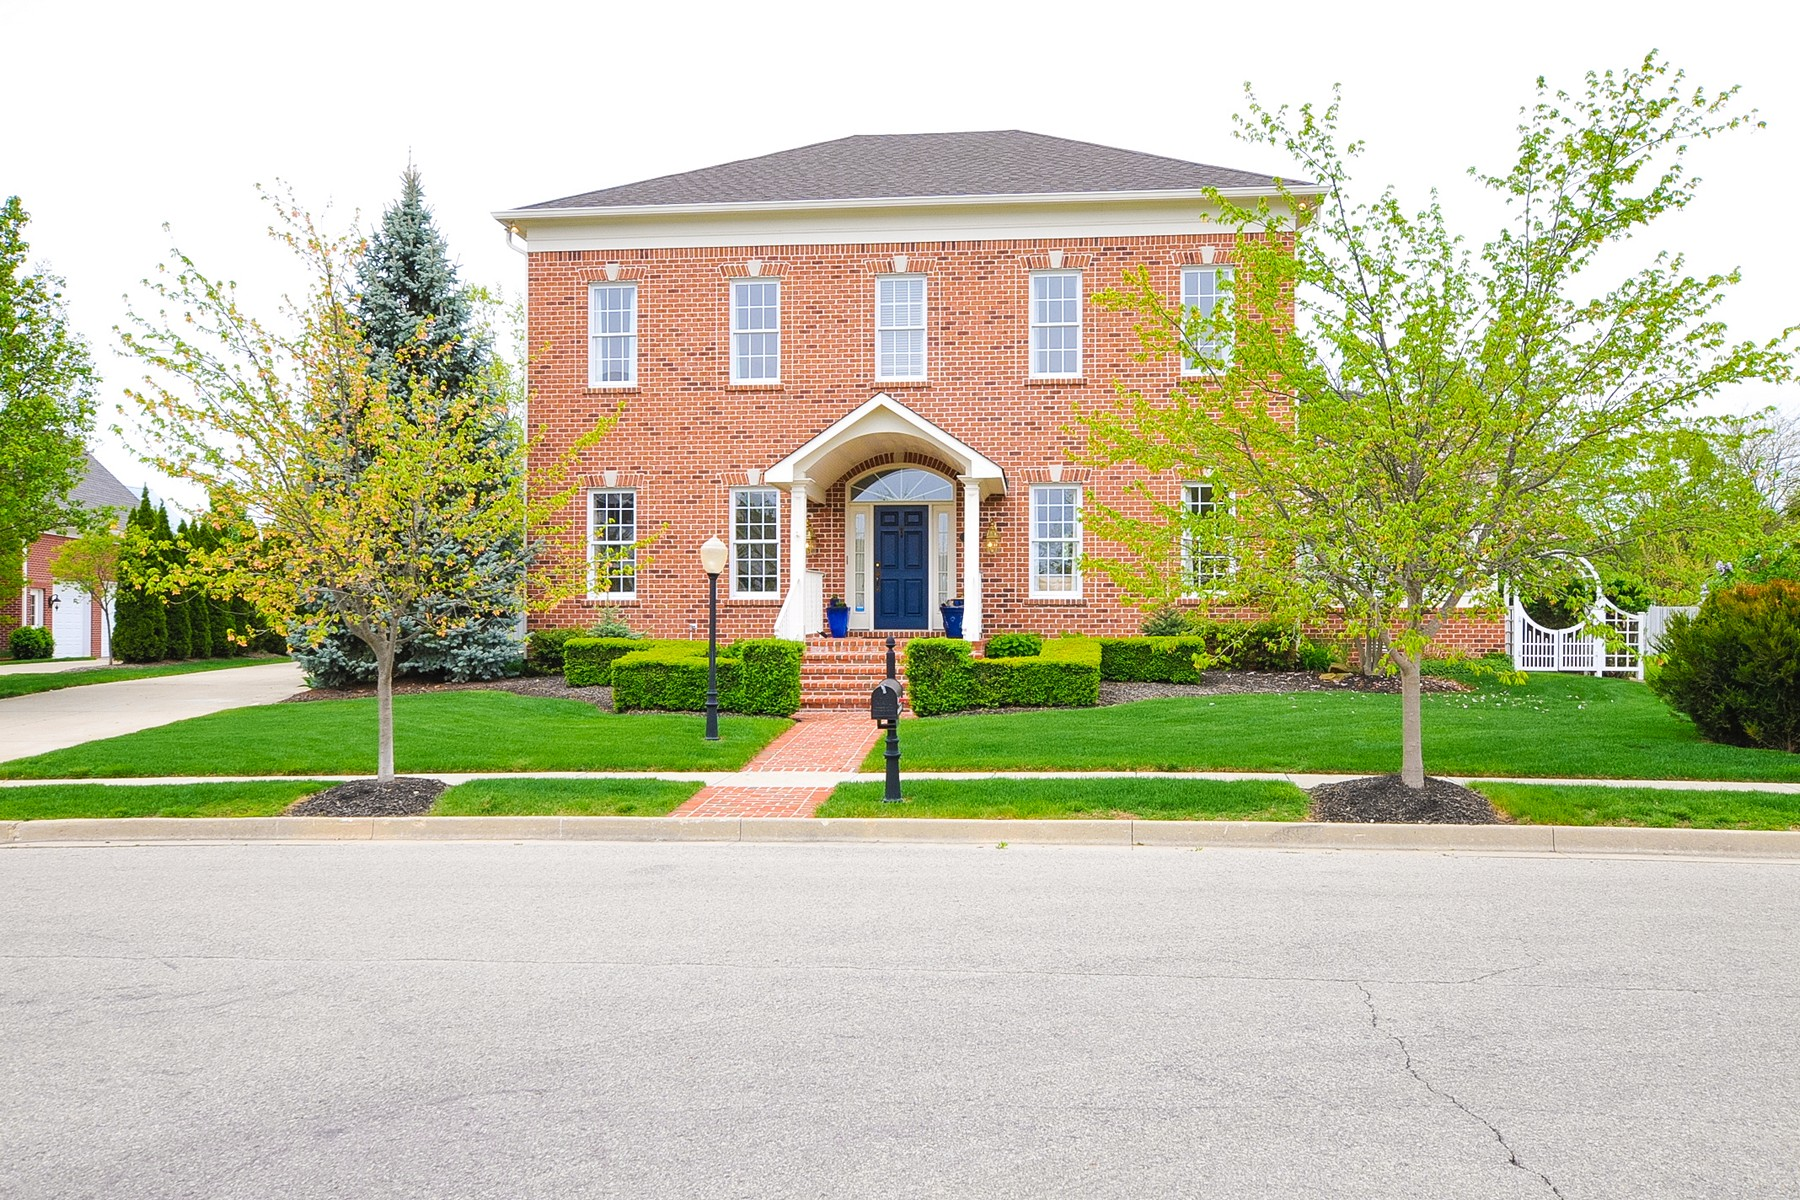 Single Family Home for Sale at Immaculate Village of WestClay Home 1886 Broughton Street Carmel, Indiana, 46032 United States